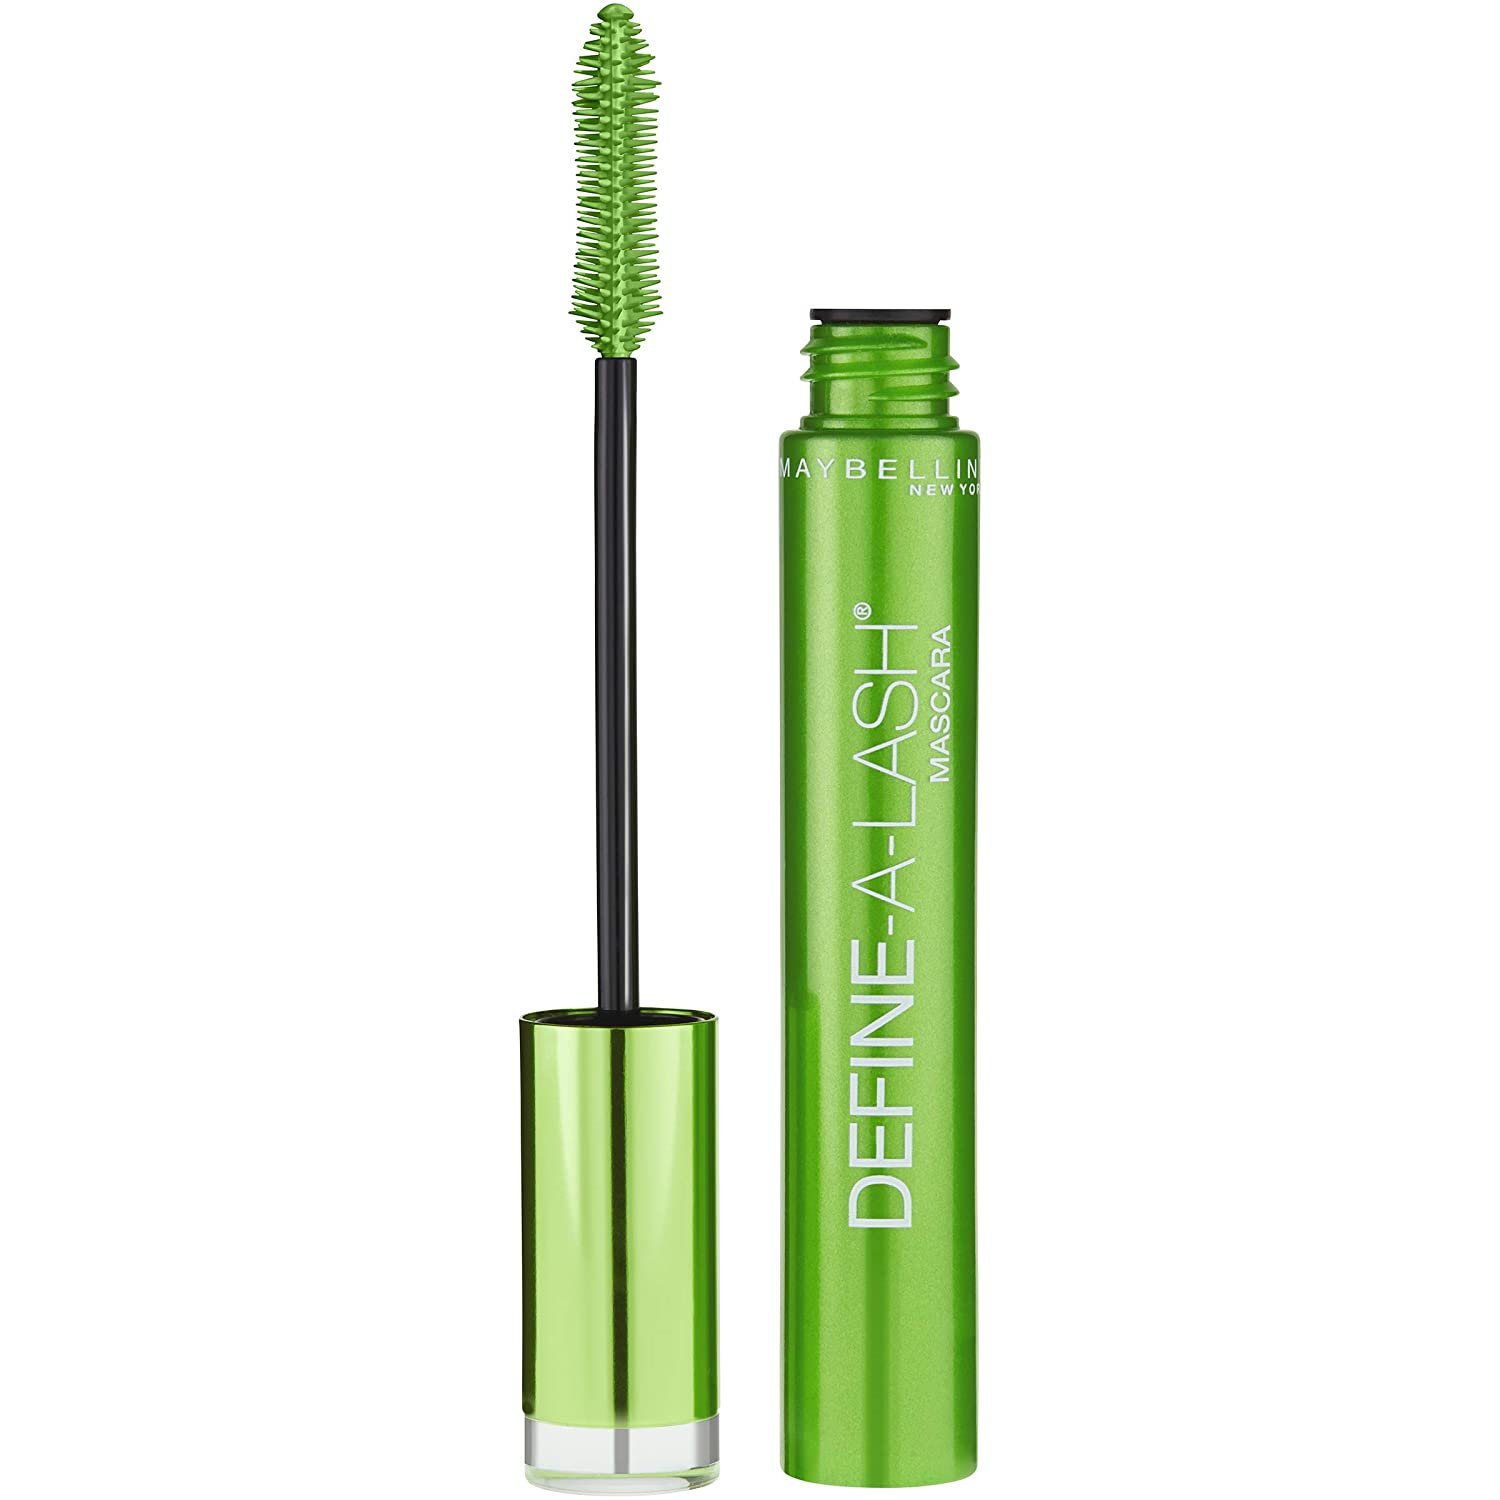 Maybelline New York Define-A-Lash Lengthening Washable Mascara, Very Black. For Washable Definition and Shape in Longer-looking Lashes, 0.22 Fluid Ounce : Beauty